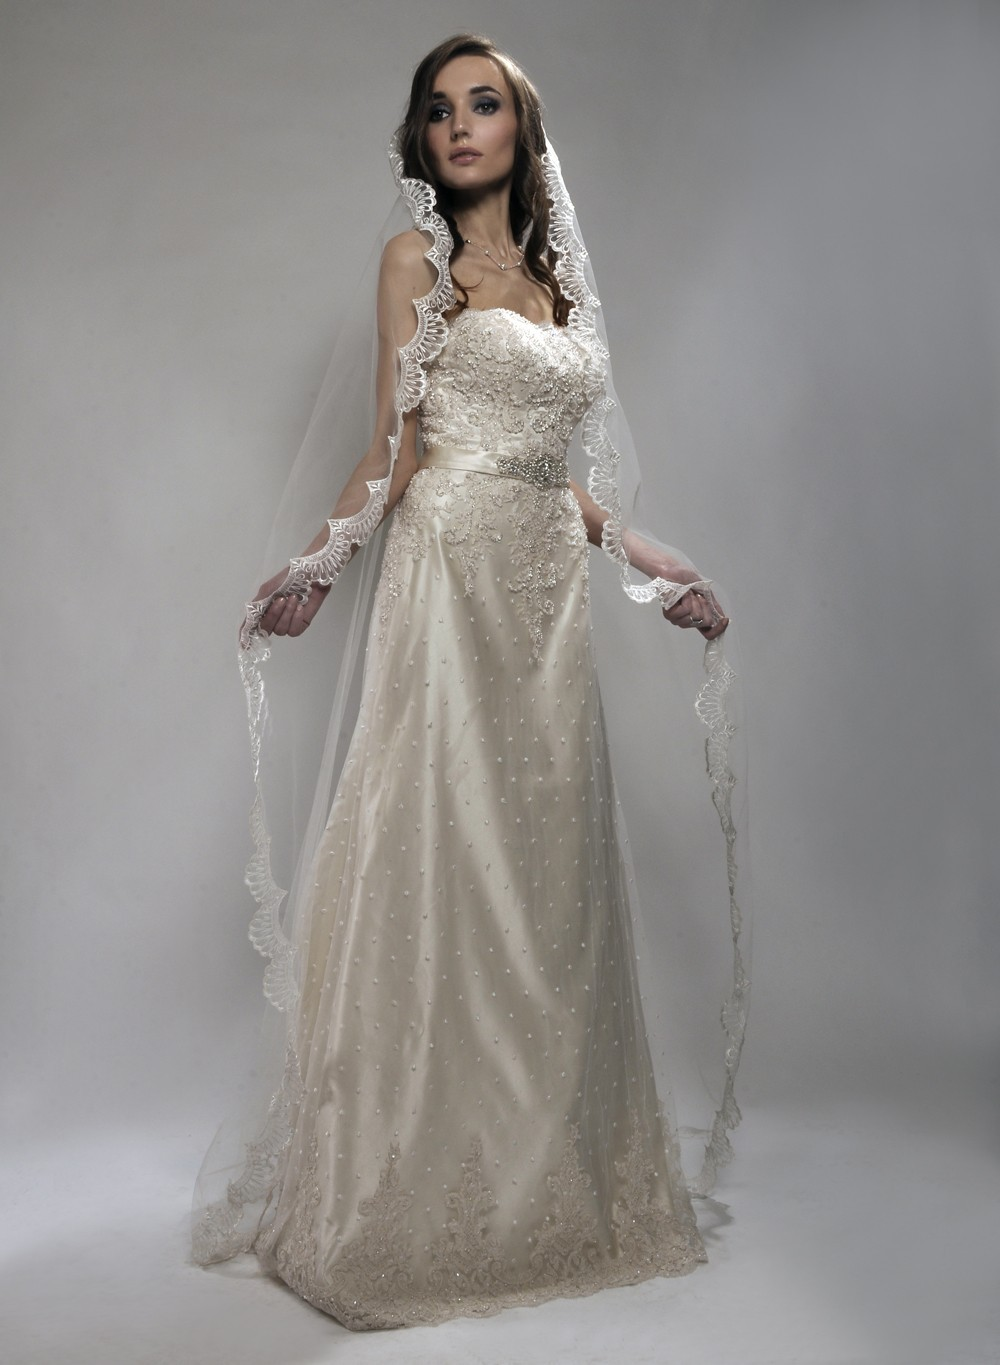 Lace Wedding Dress And Veil : Long bridal veils from fingertip to dramatic